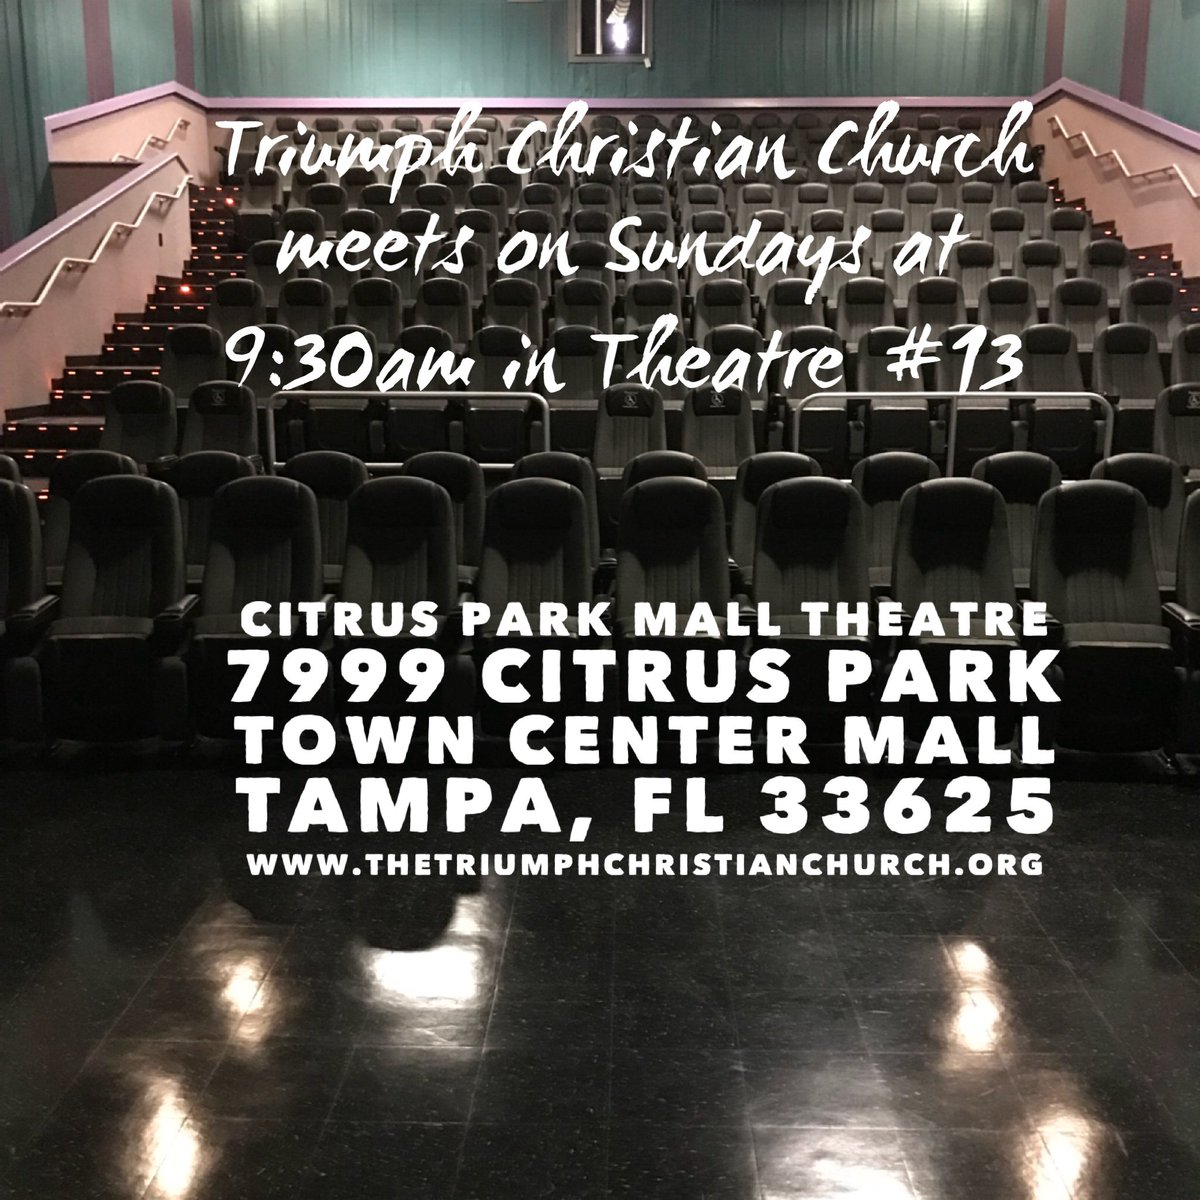 Join us at #TriumphChristianChurch for a service.